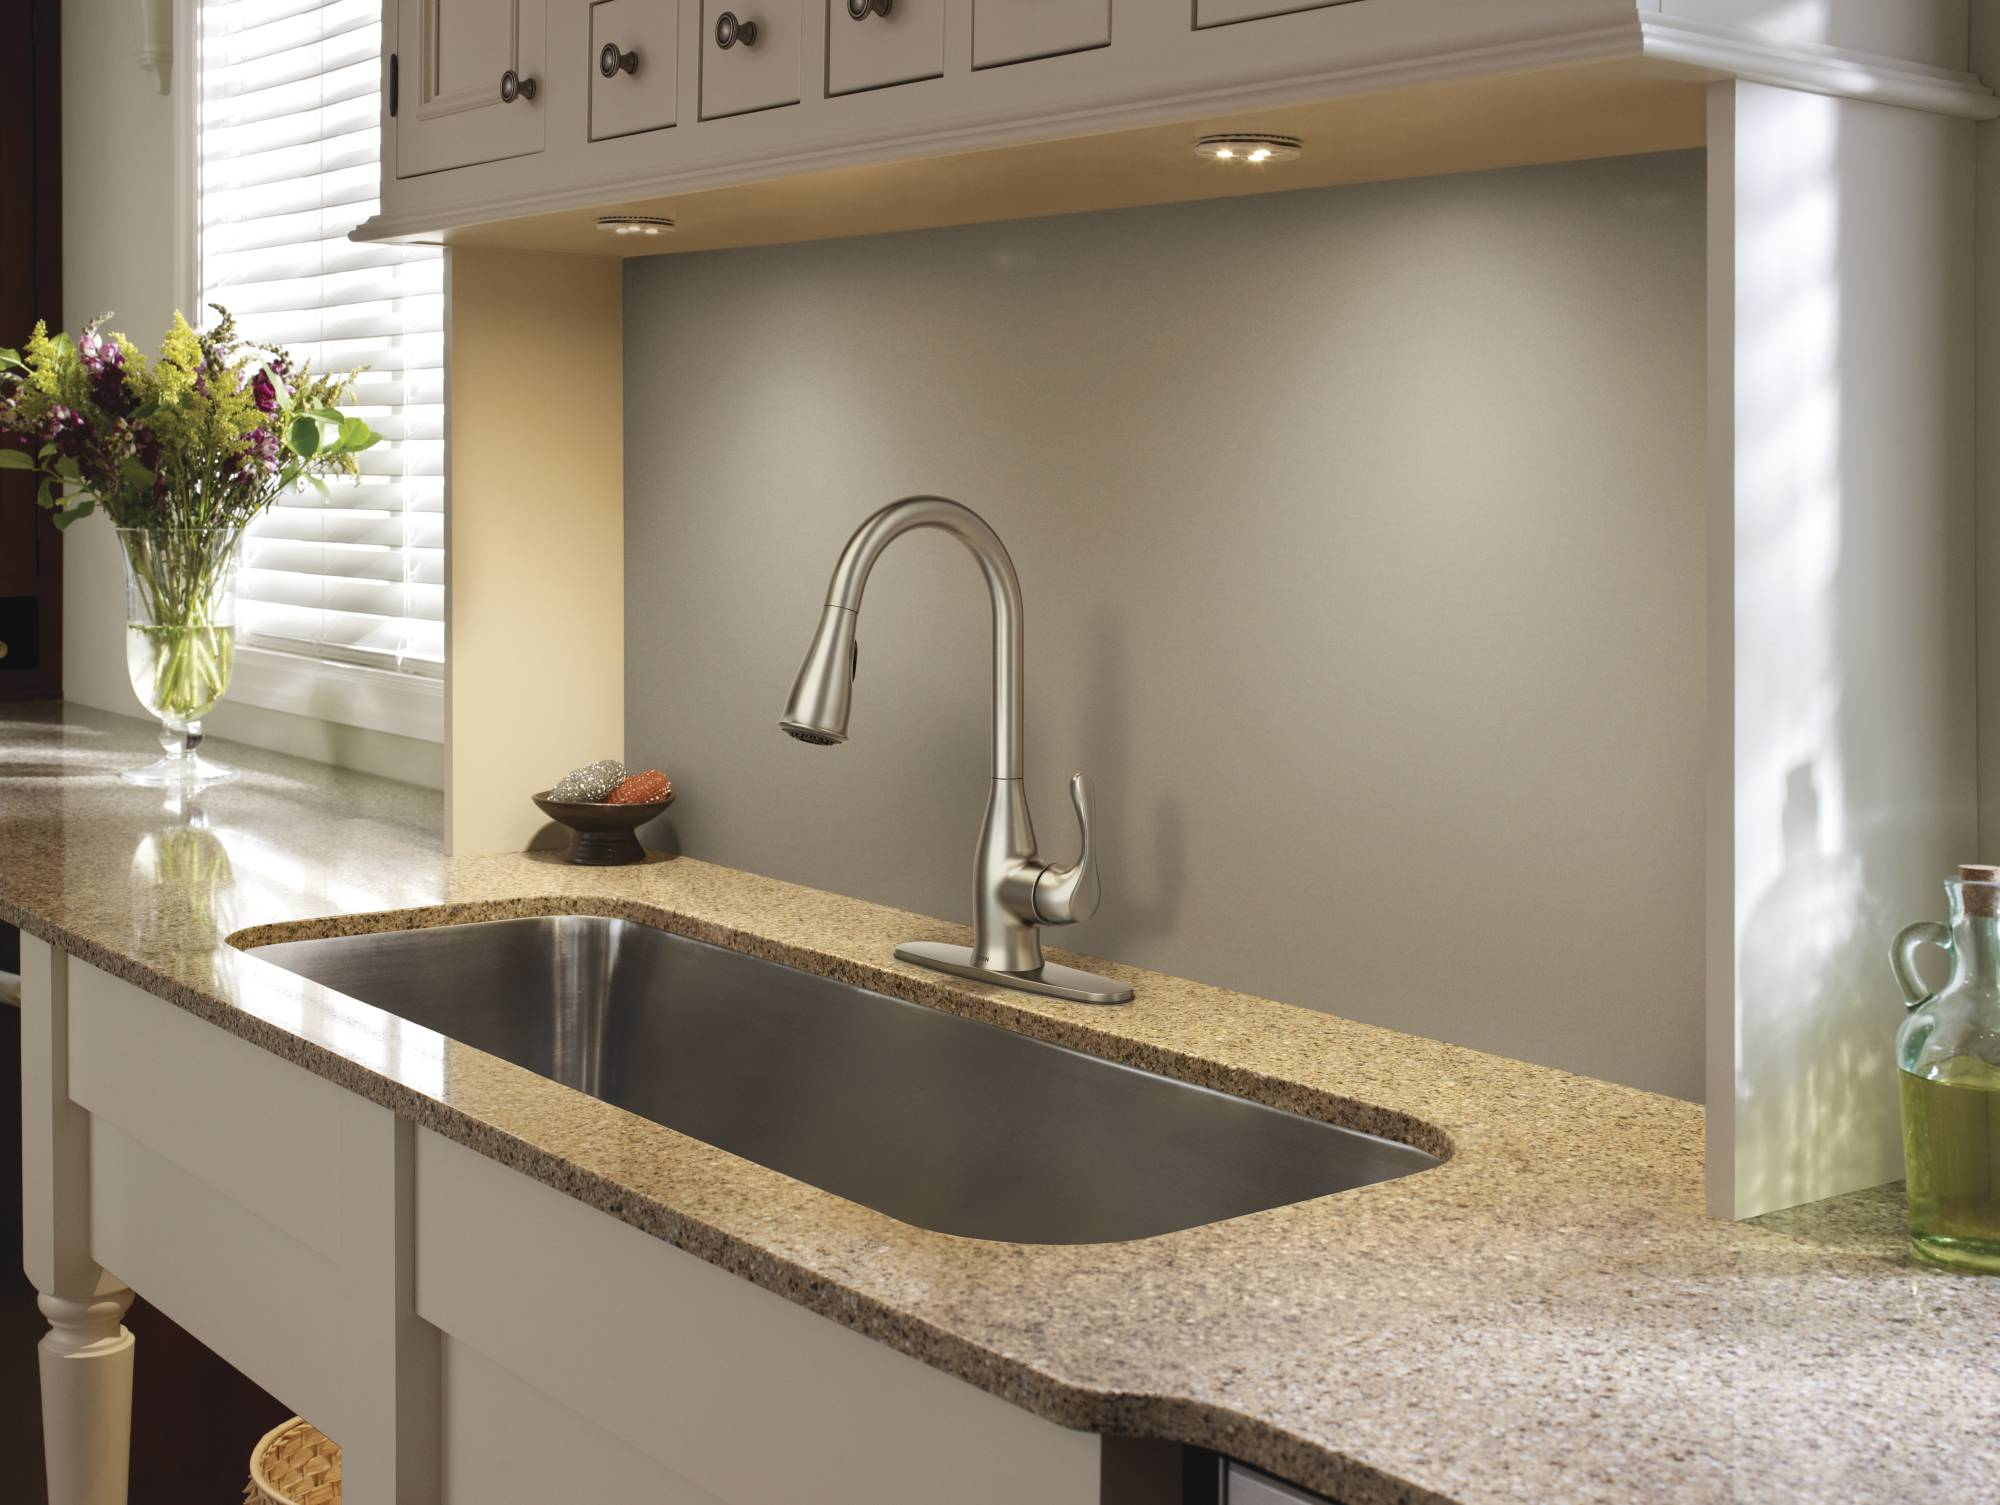 Make The Kitchen Sink Your Favorite Spot With New Moen® Kitchen ...